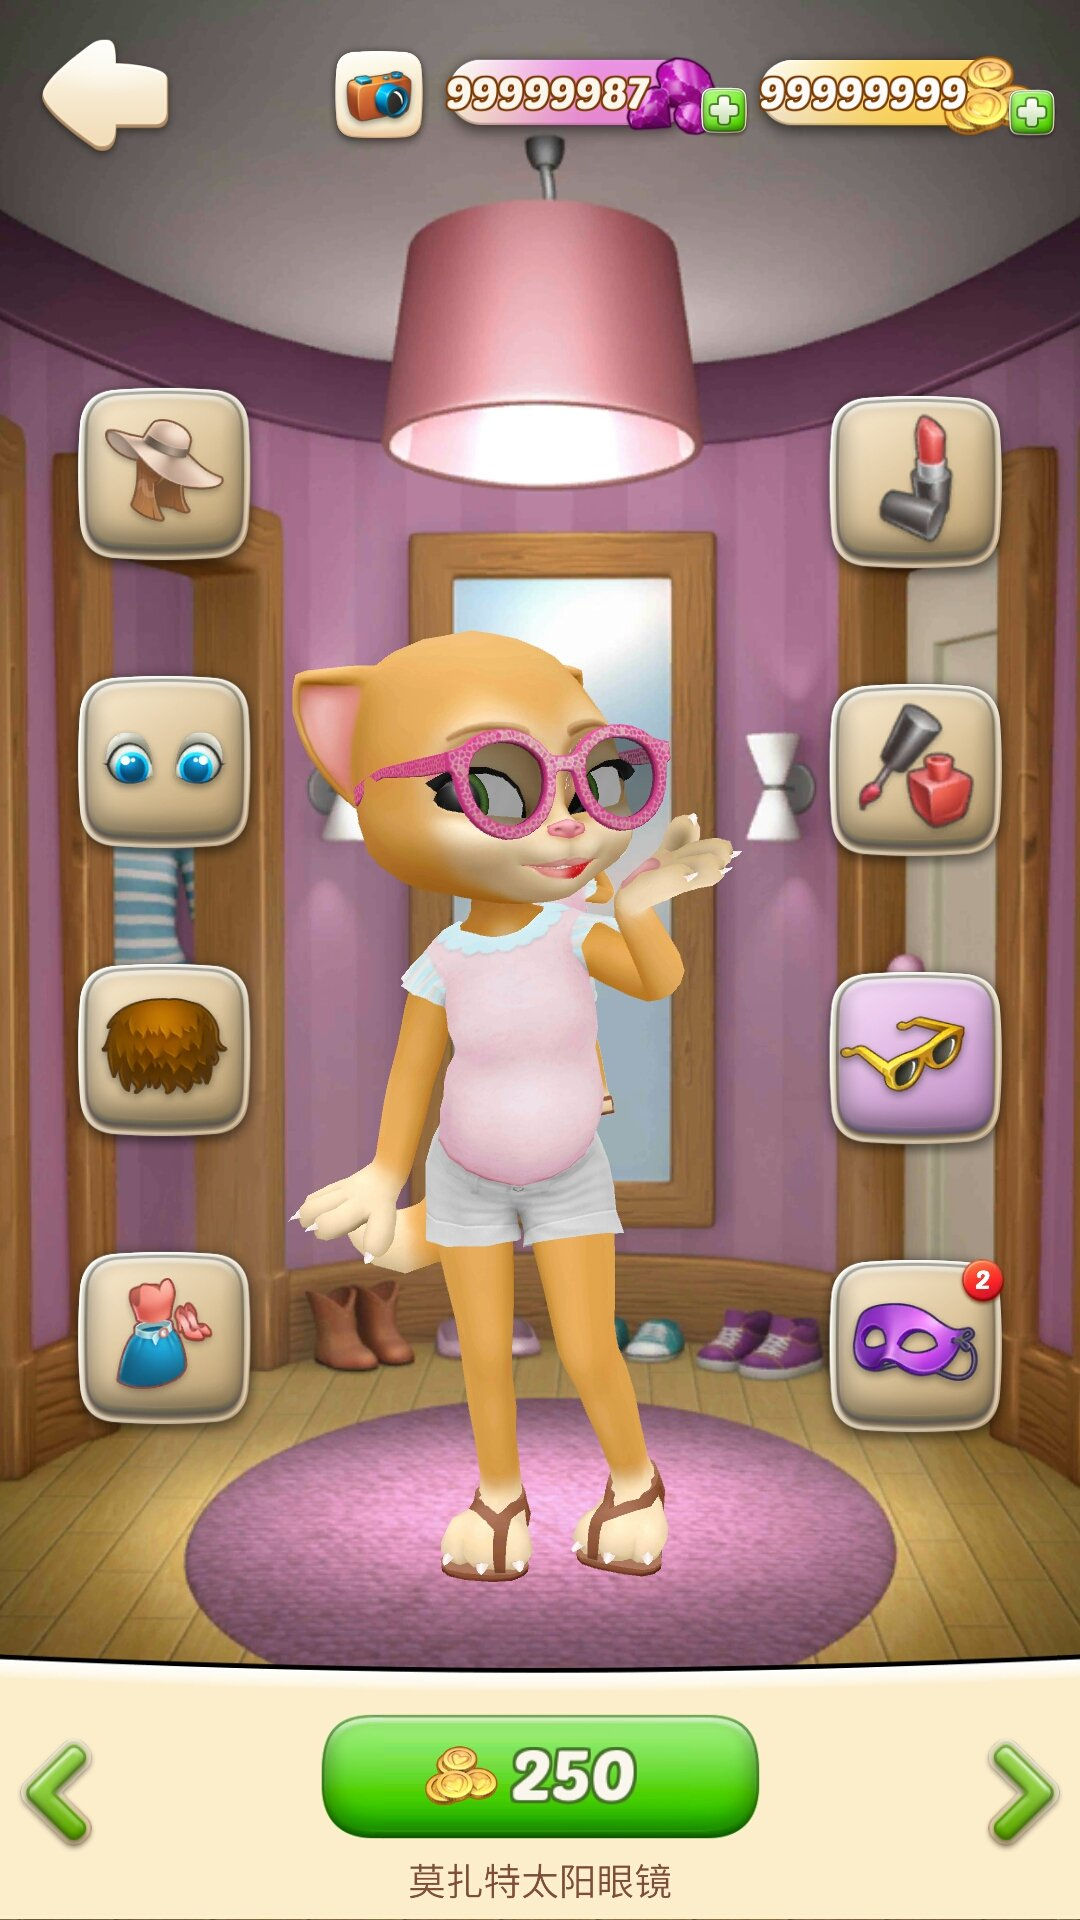 The new simulation game for Android Kitty Cat …